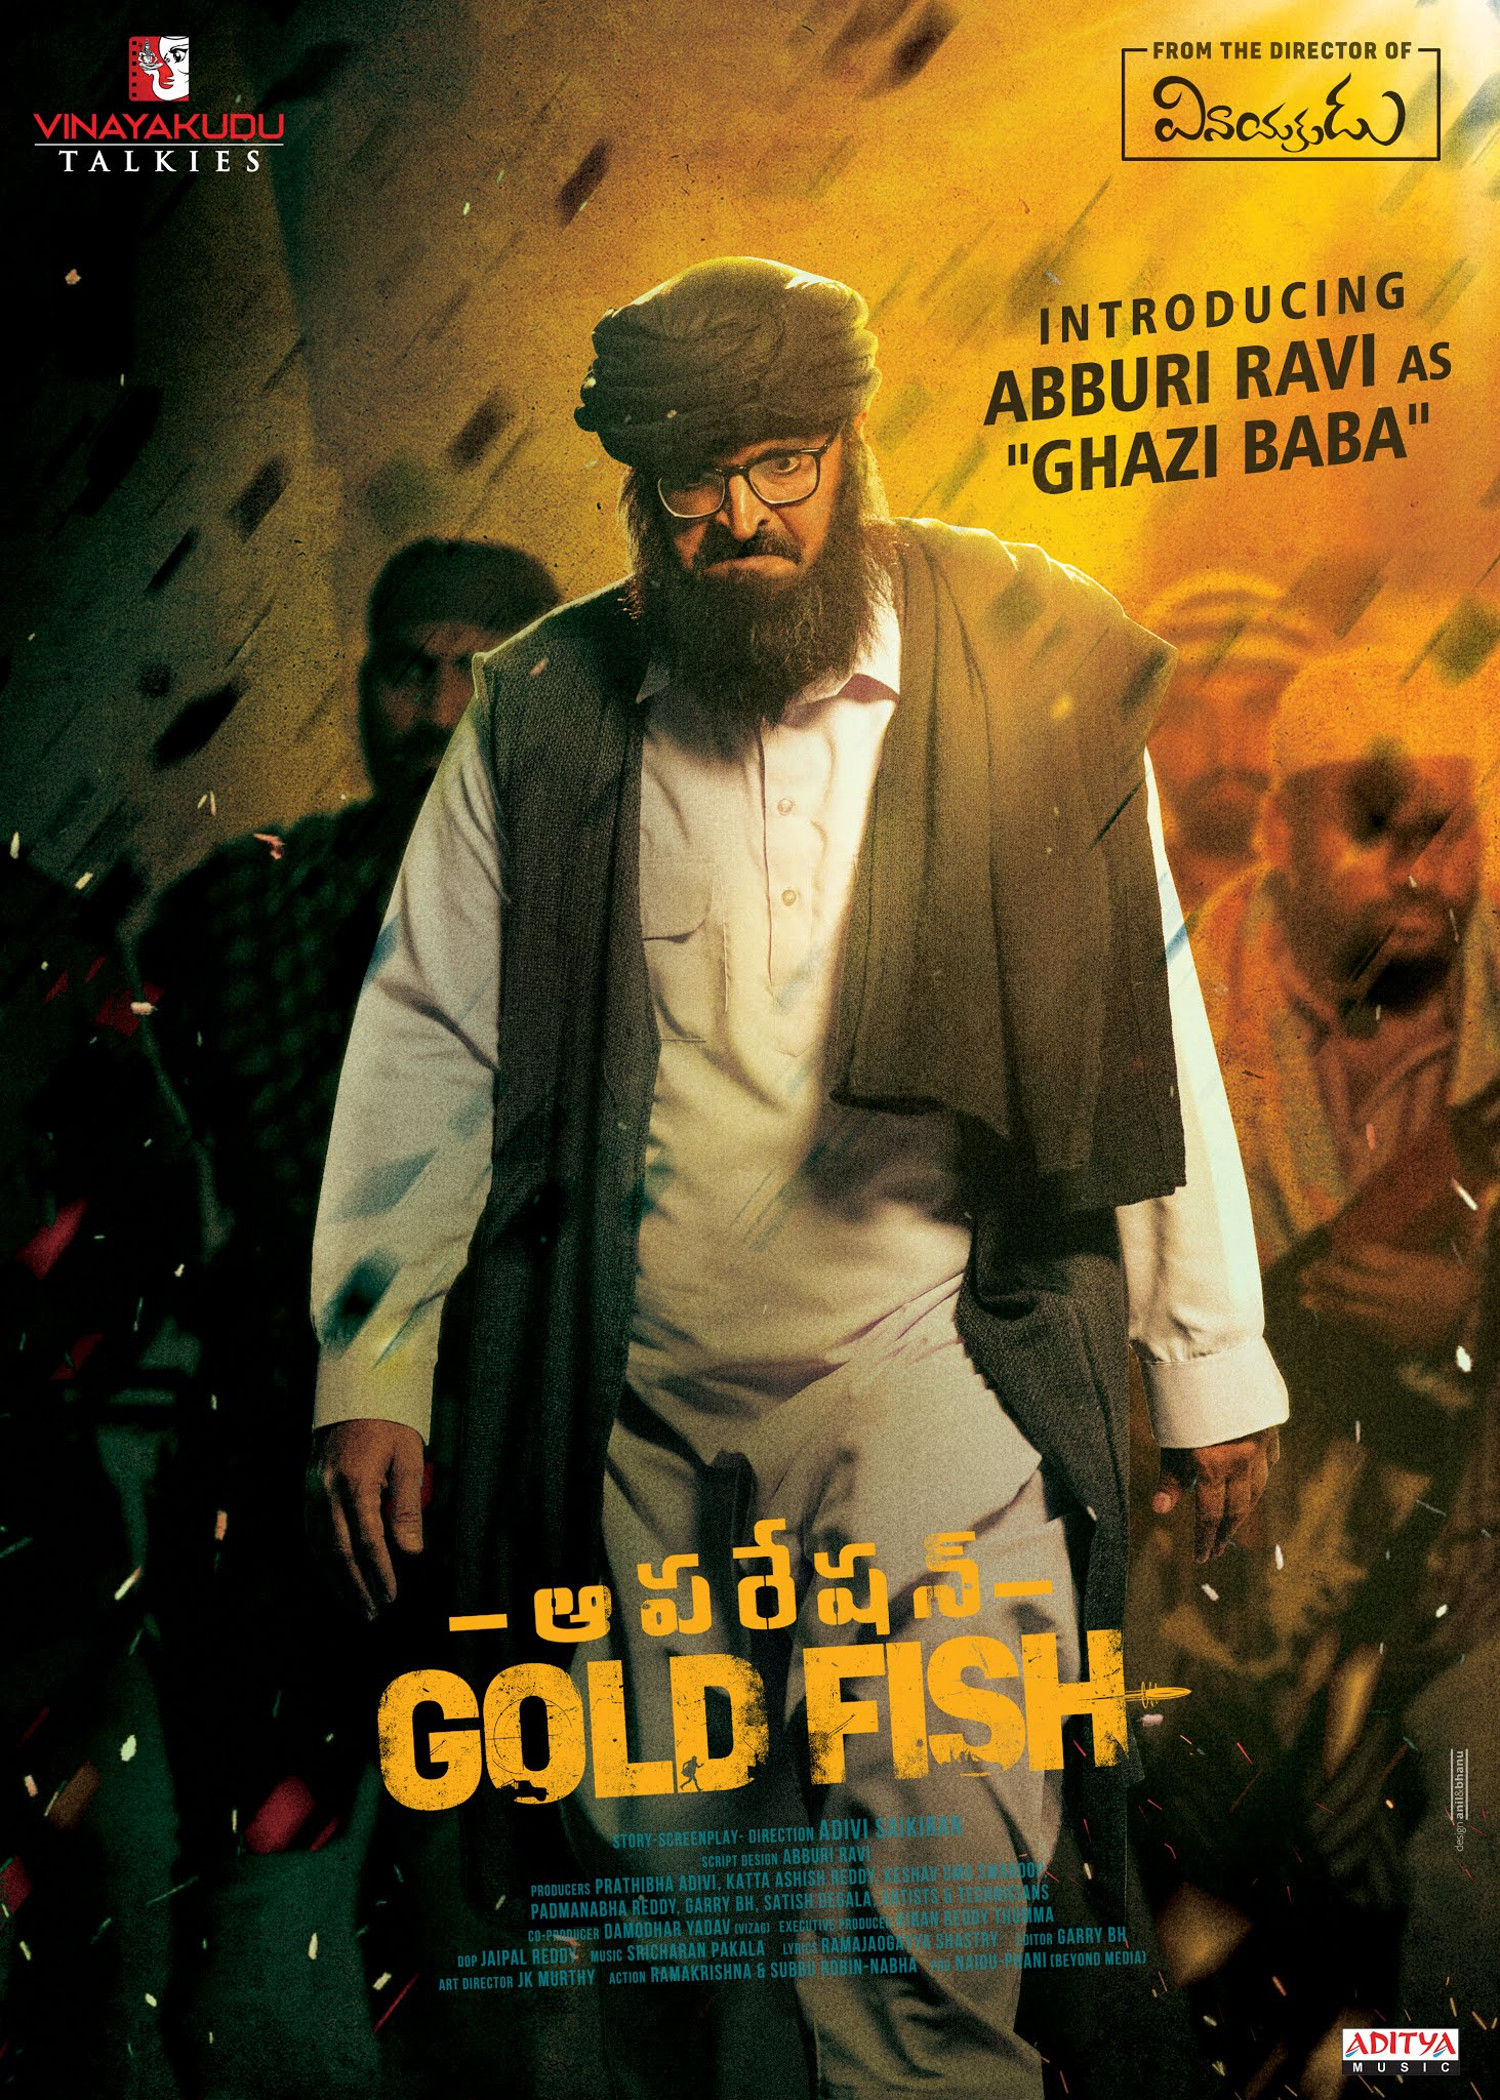 Introducing Abburi Ravi as Ghazi Baba in Operation Gold Fish MOvie Poster HD